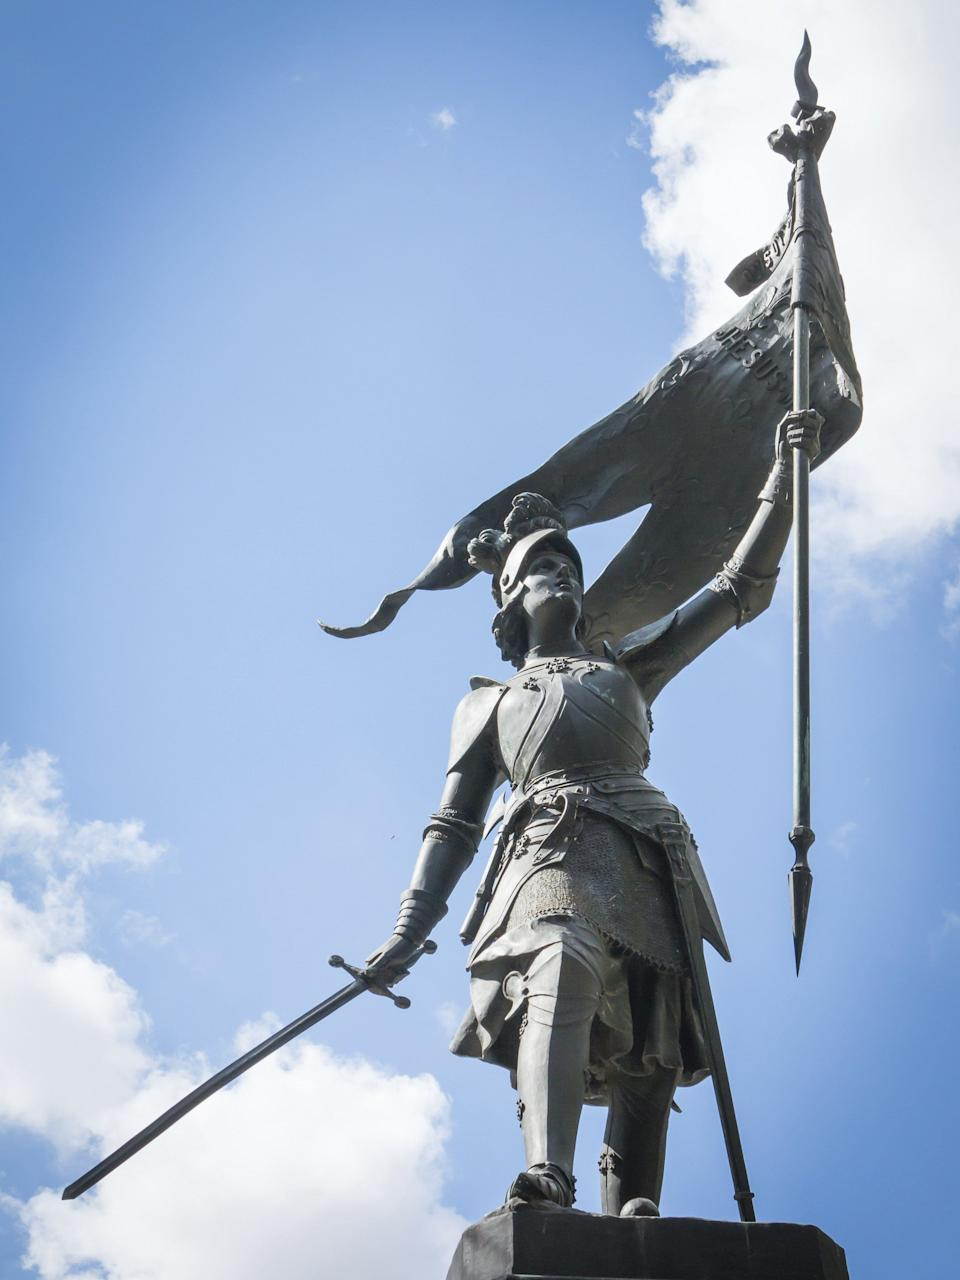 "<a href=""http://www.history.com/topics/saint-joan-of-arc"">Joan of Arc</a> grew up a peasant in medieval France and reportedly started hearing the voices of saints from a young age. At the age of 18, Joan believed that God had chosen her to lead France to victory in its ongoing war with England. The precocious Joan convinced crowned prince Charles of Valois to allow her to lead a the country's army to Orléans, where it <a href=""http://www.britannica.com/biography/Saint-Joan-of-Arc"">defeated</a> the English and their French allies, the Burgundians. She was subsequently captured by Anglo-Burgundian forces, tried for heresy and burned at the stake in 1431. She was just 19 years old when she died. The Catholic Church canonized her in 1920."